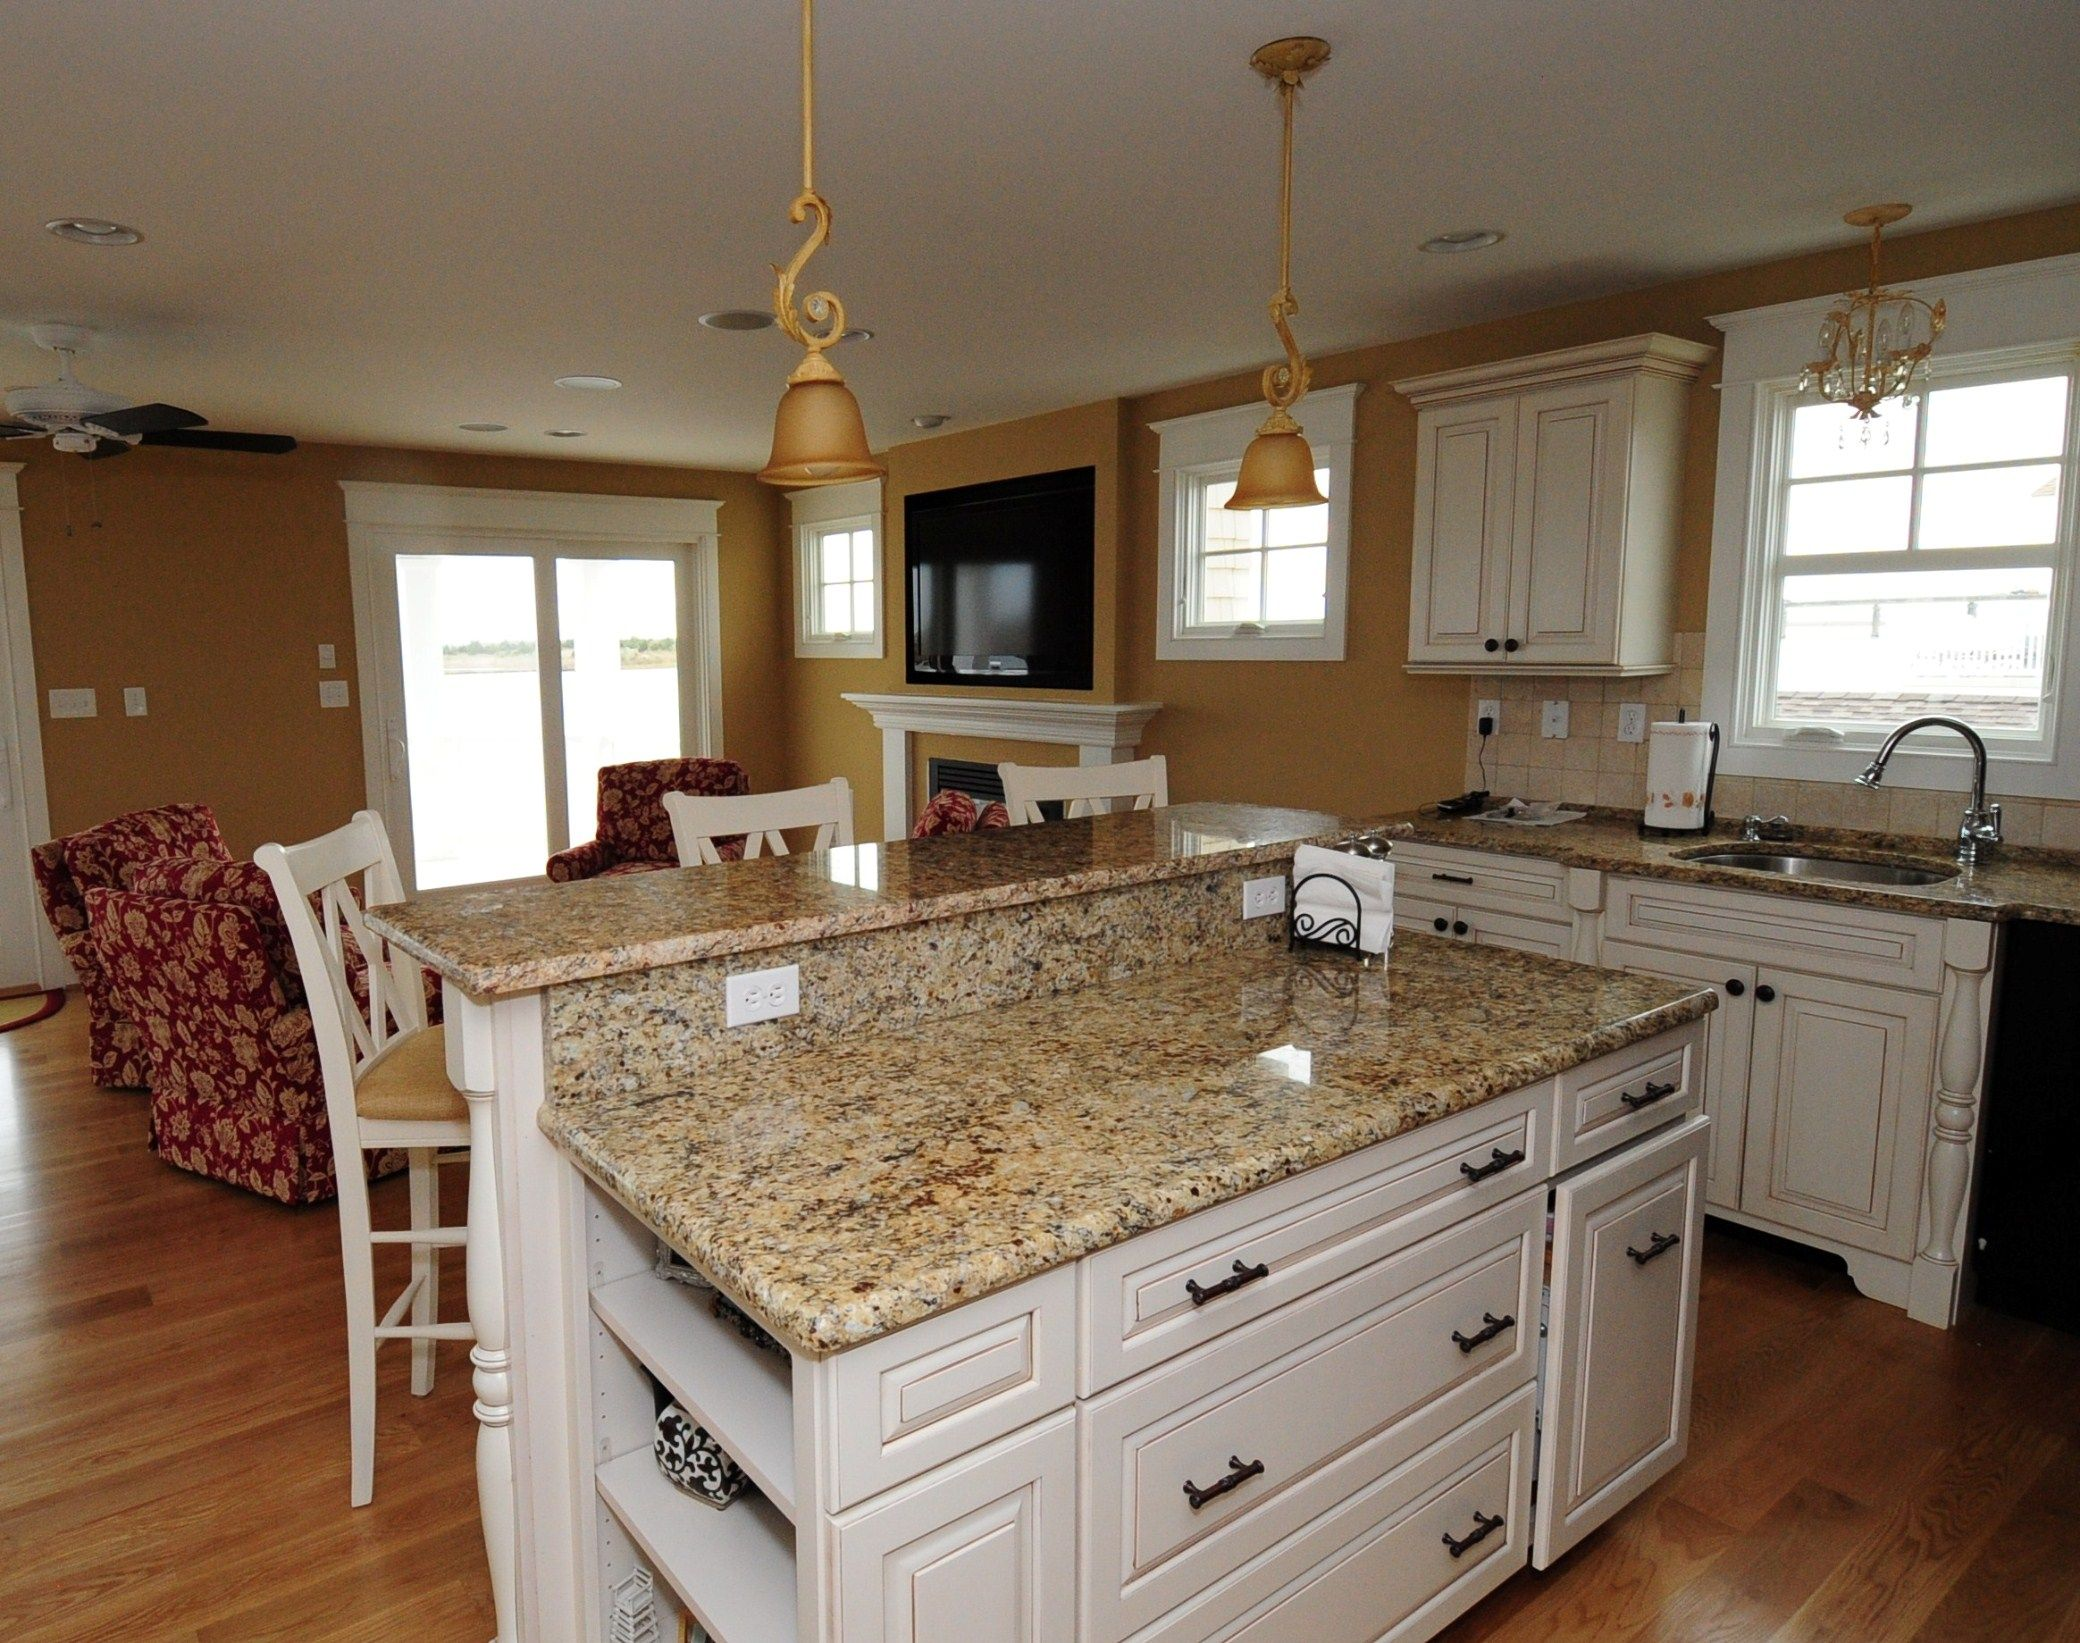 Granite Kitchen Countertops With White Cabinets Pin By Tina Varlamos On Kouzines In 2019 White Granite Kitchen